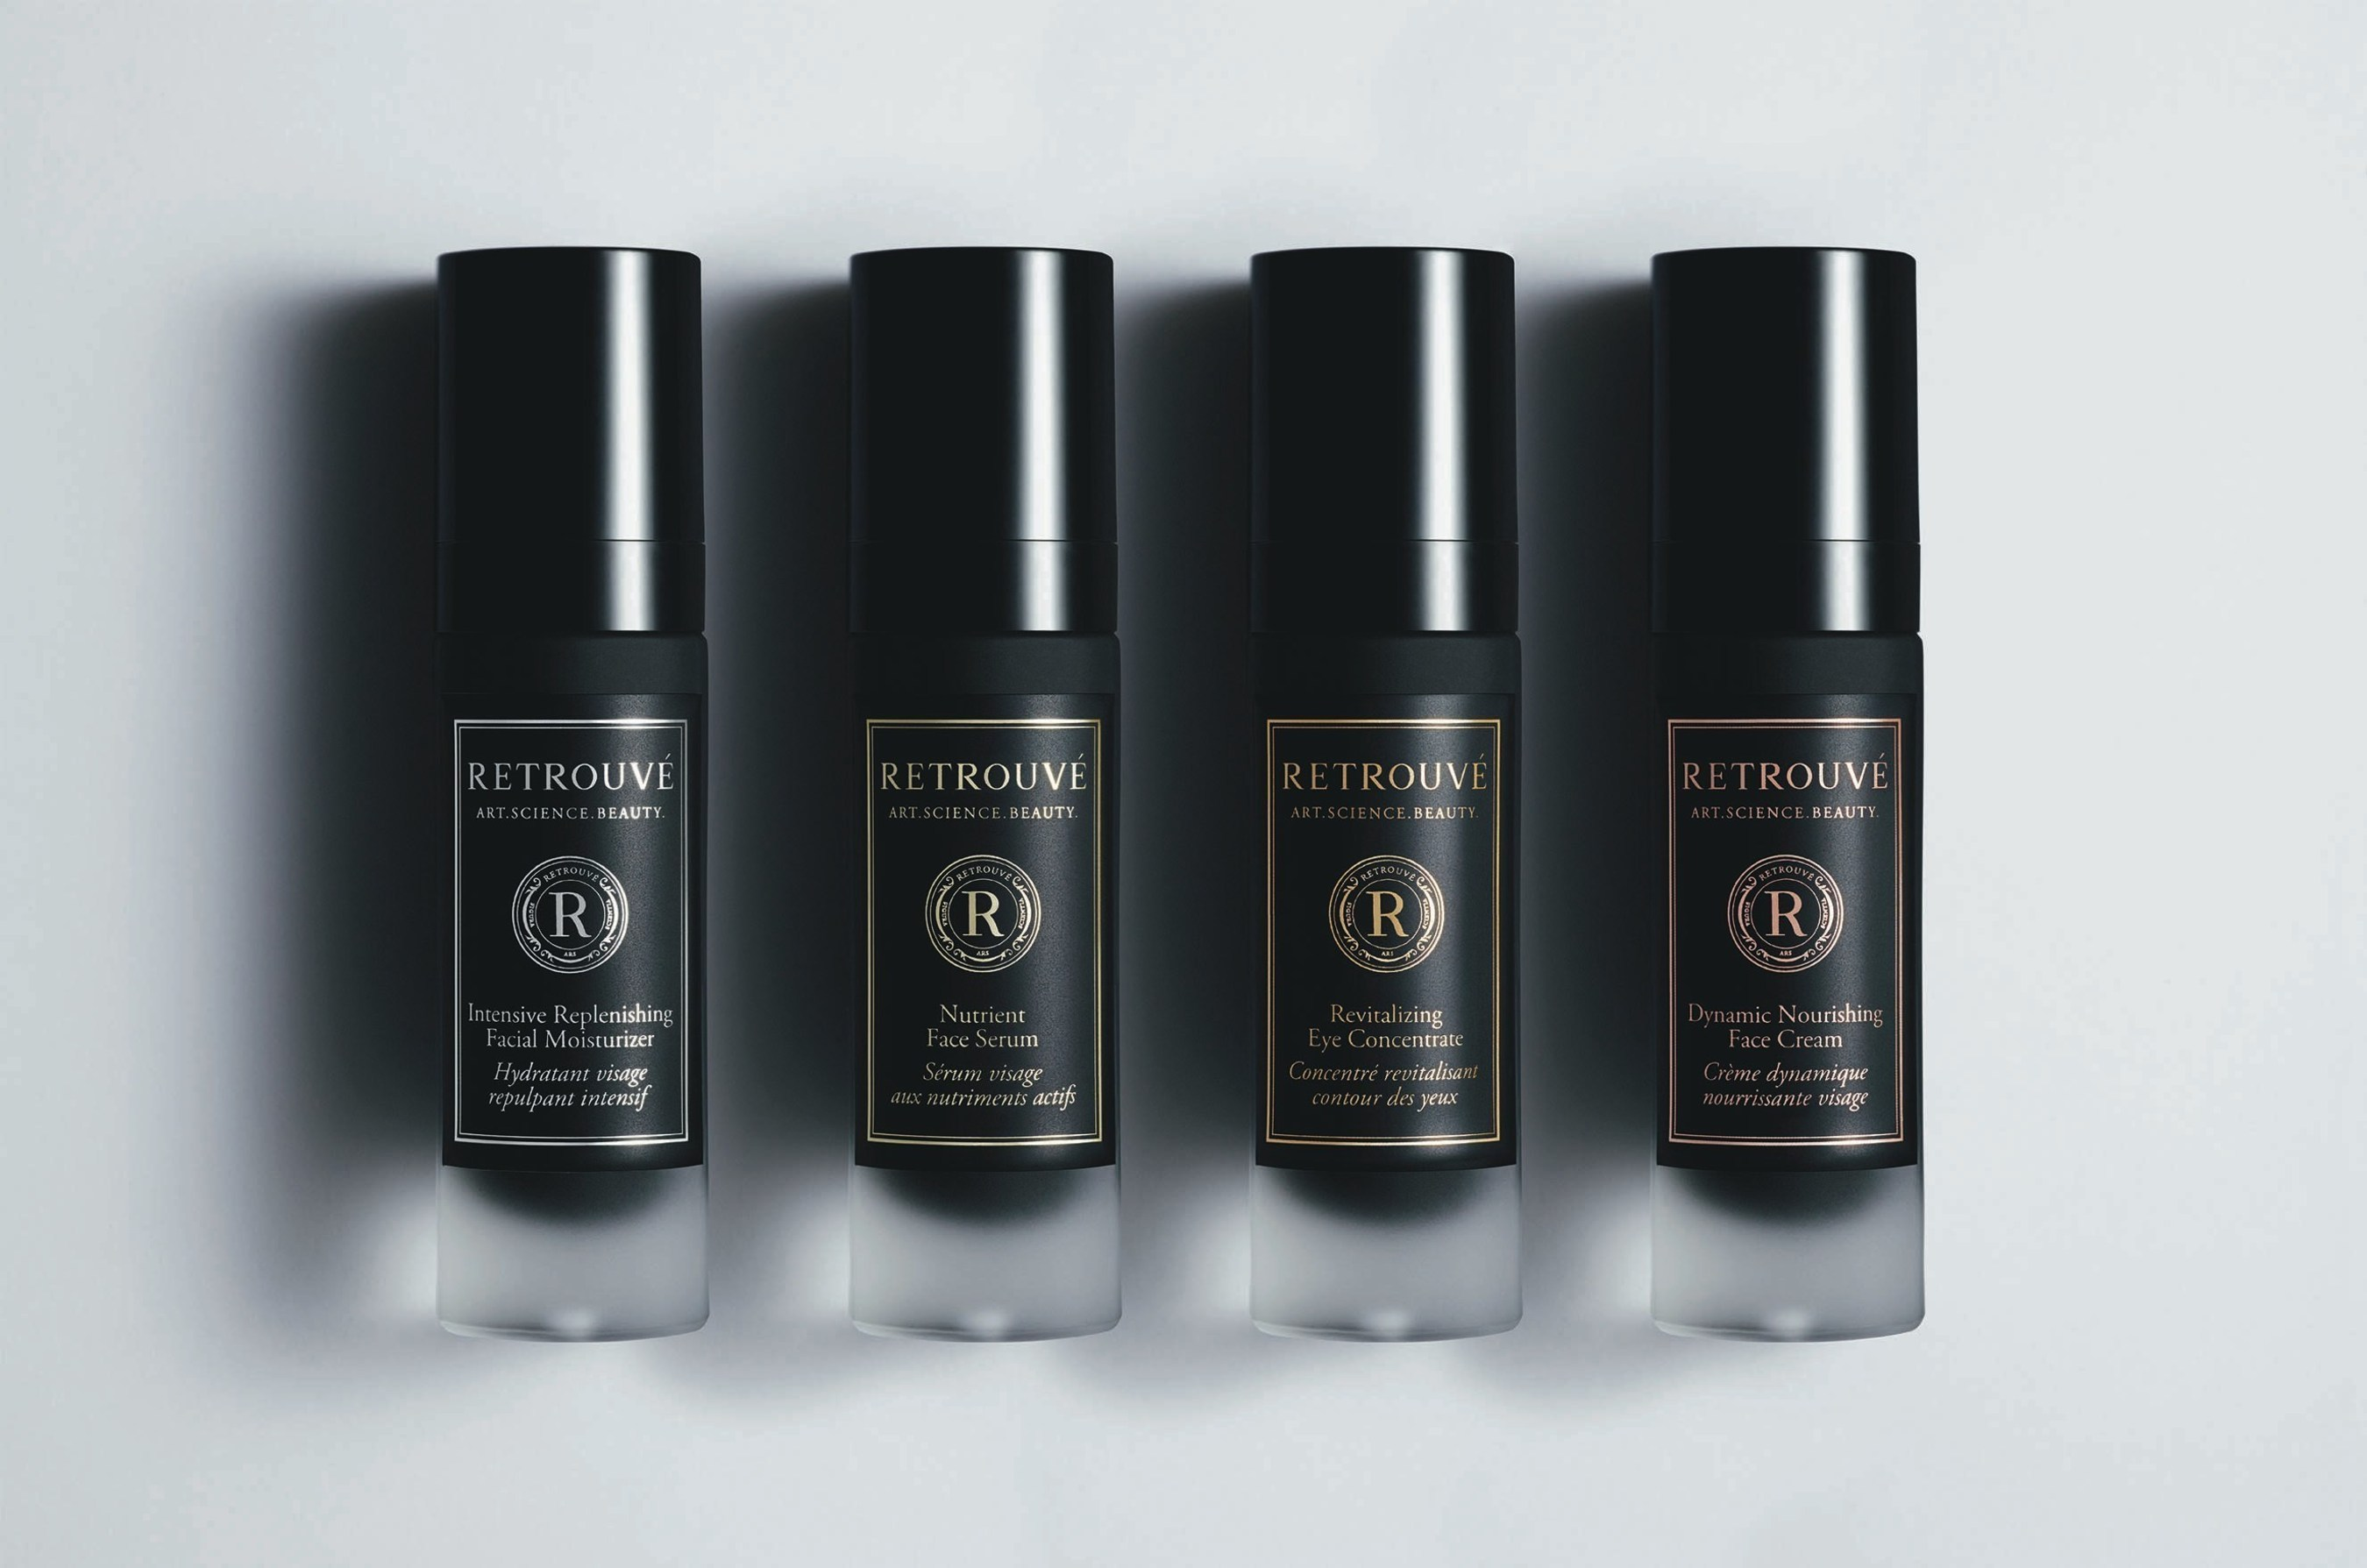 The Retrouve Collection (from left to right): Intensive Replenishing Facial Moisturizer, Nutrient Face Serum, Revitalizing Eye Concentrate, Dynamic Nourishing Face Cream